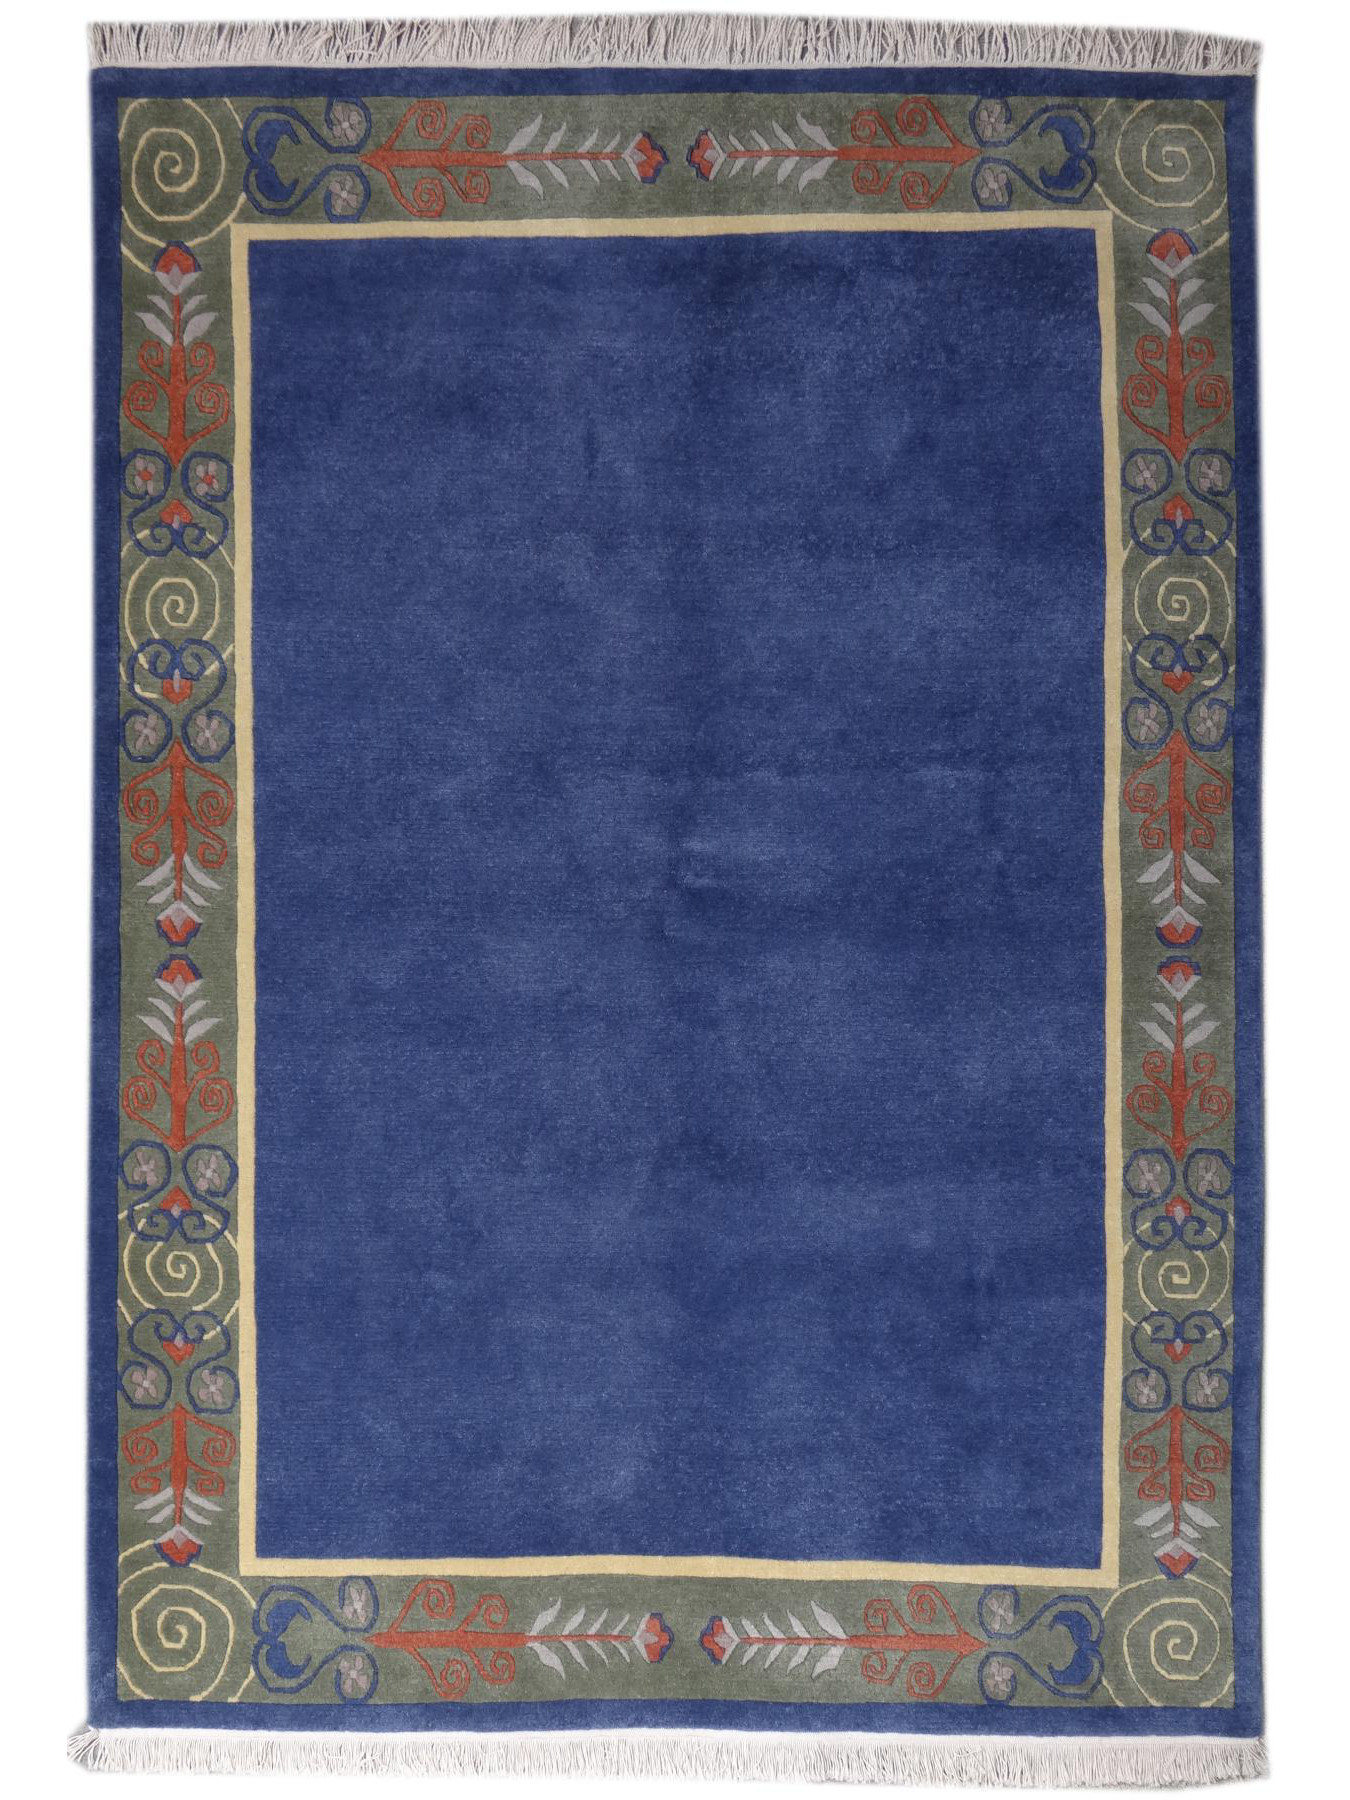 Carpets with borders - EVEREST STRONG GER033 7431